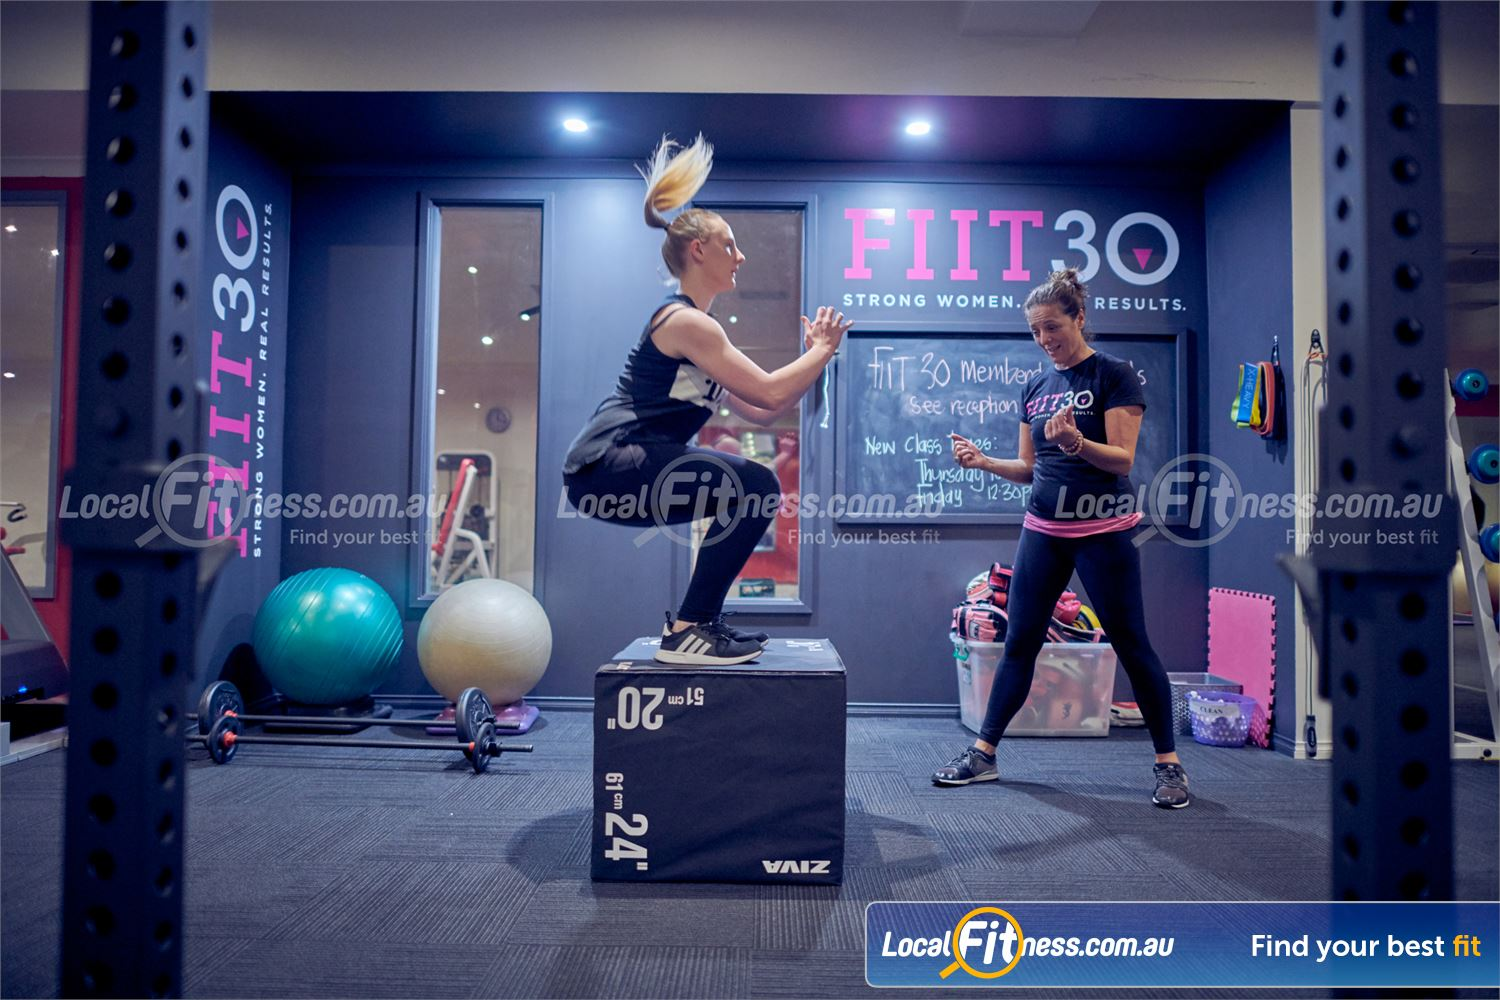 Fernwood Fitness Near Mont Albert North Get into functional training with the Fernwood FIIT30 program.